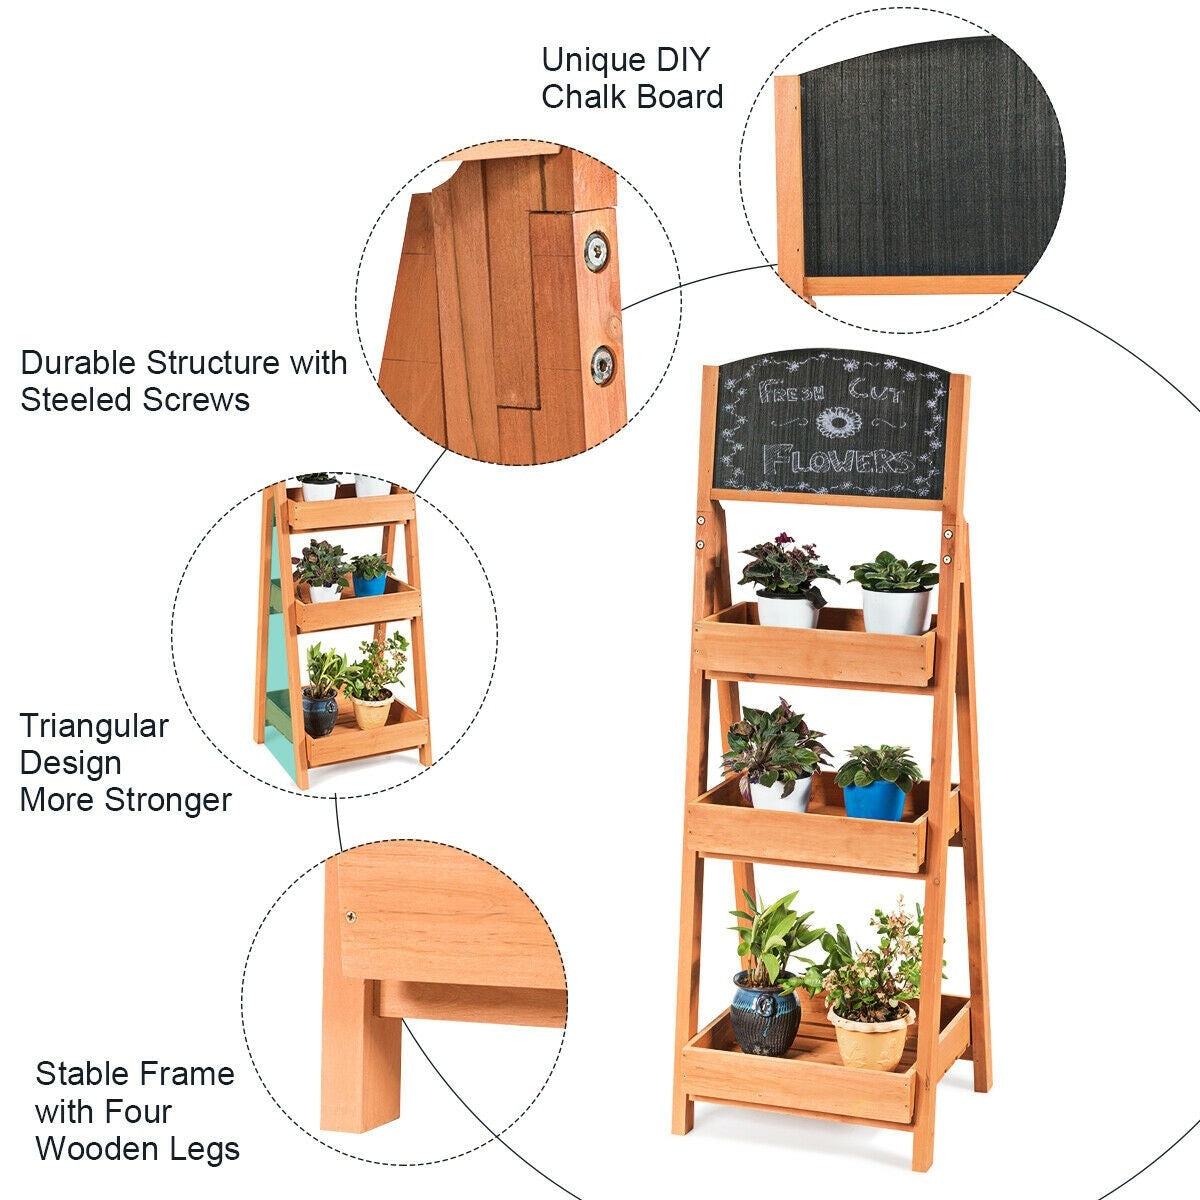 Freestanding Wooden Chalkboard Sign Plant Stand with 3-Tier Display Shelf